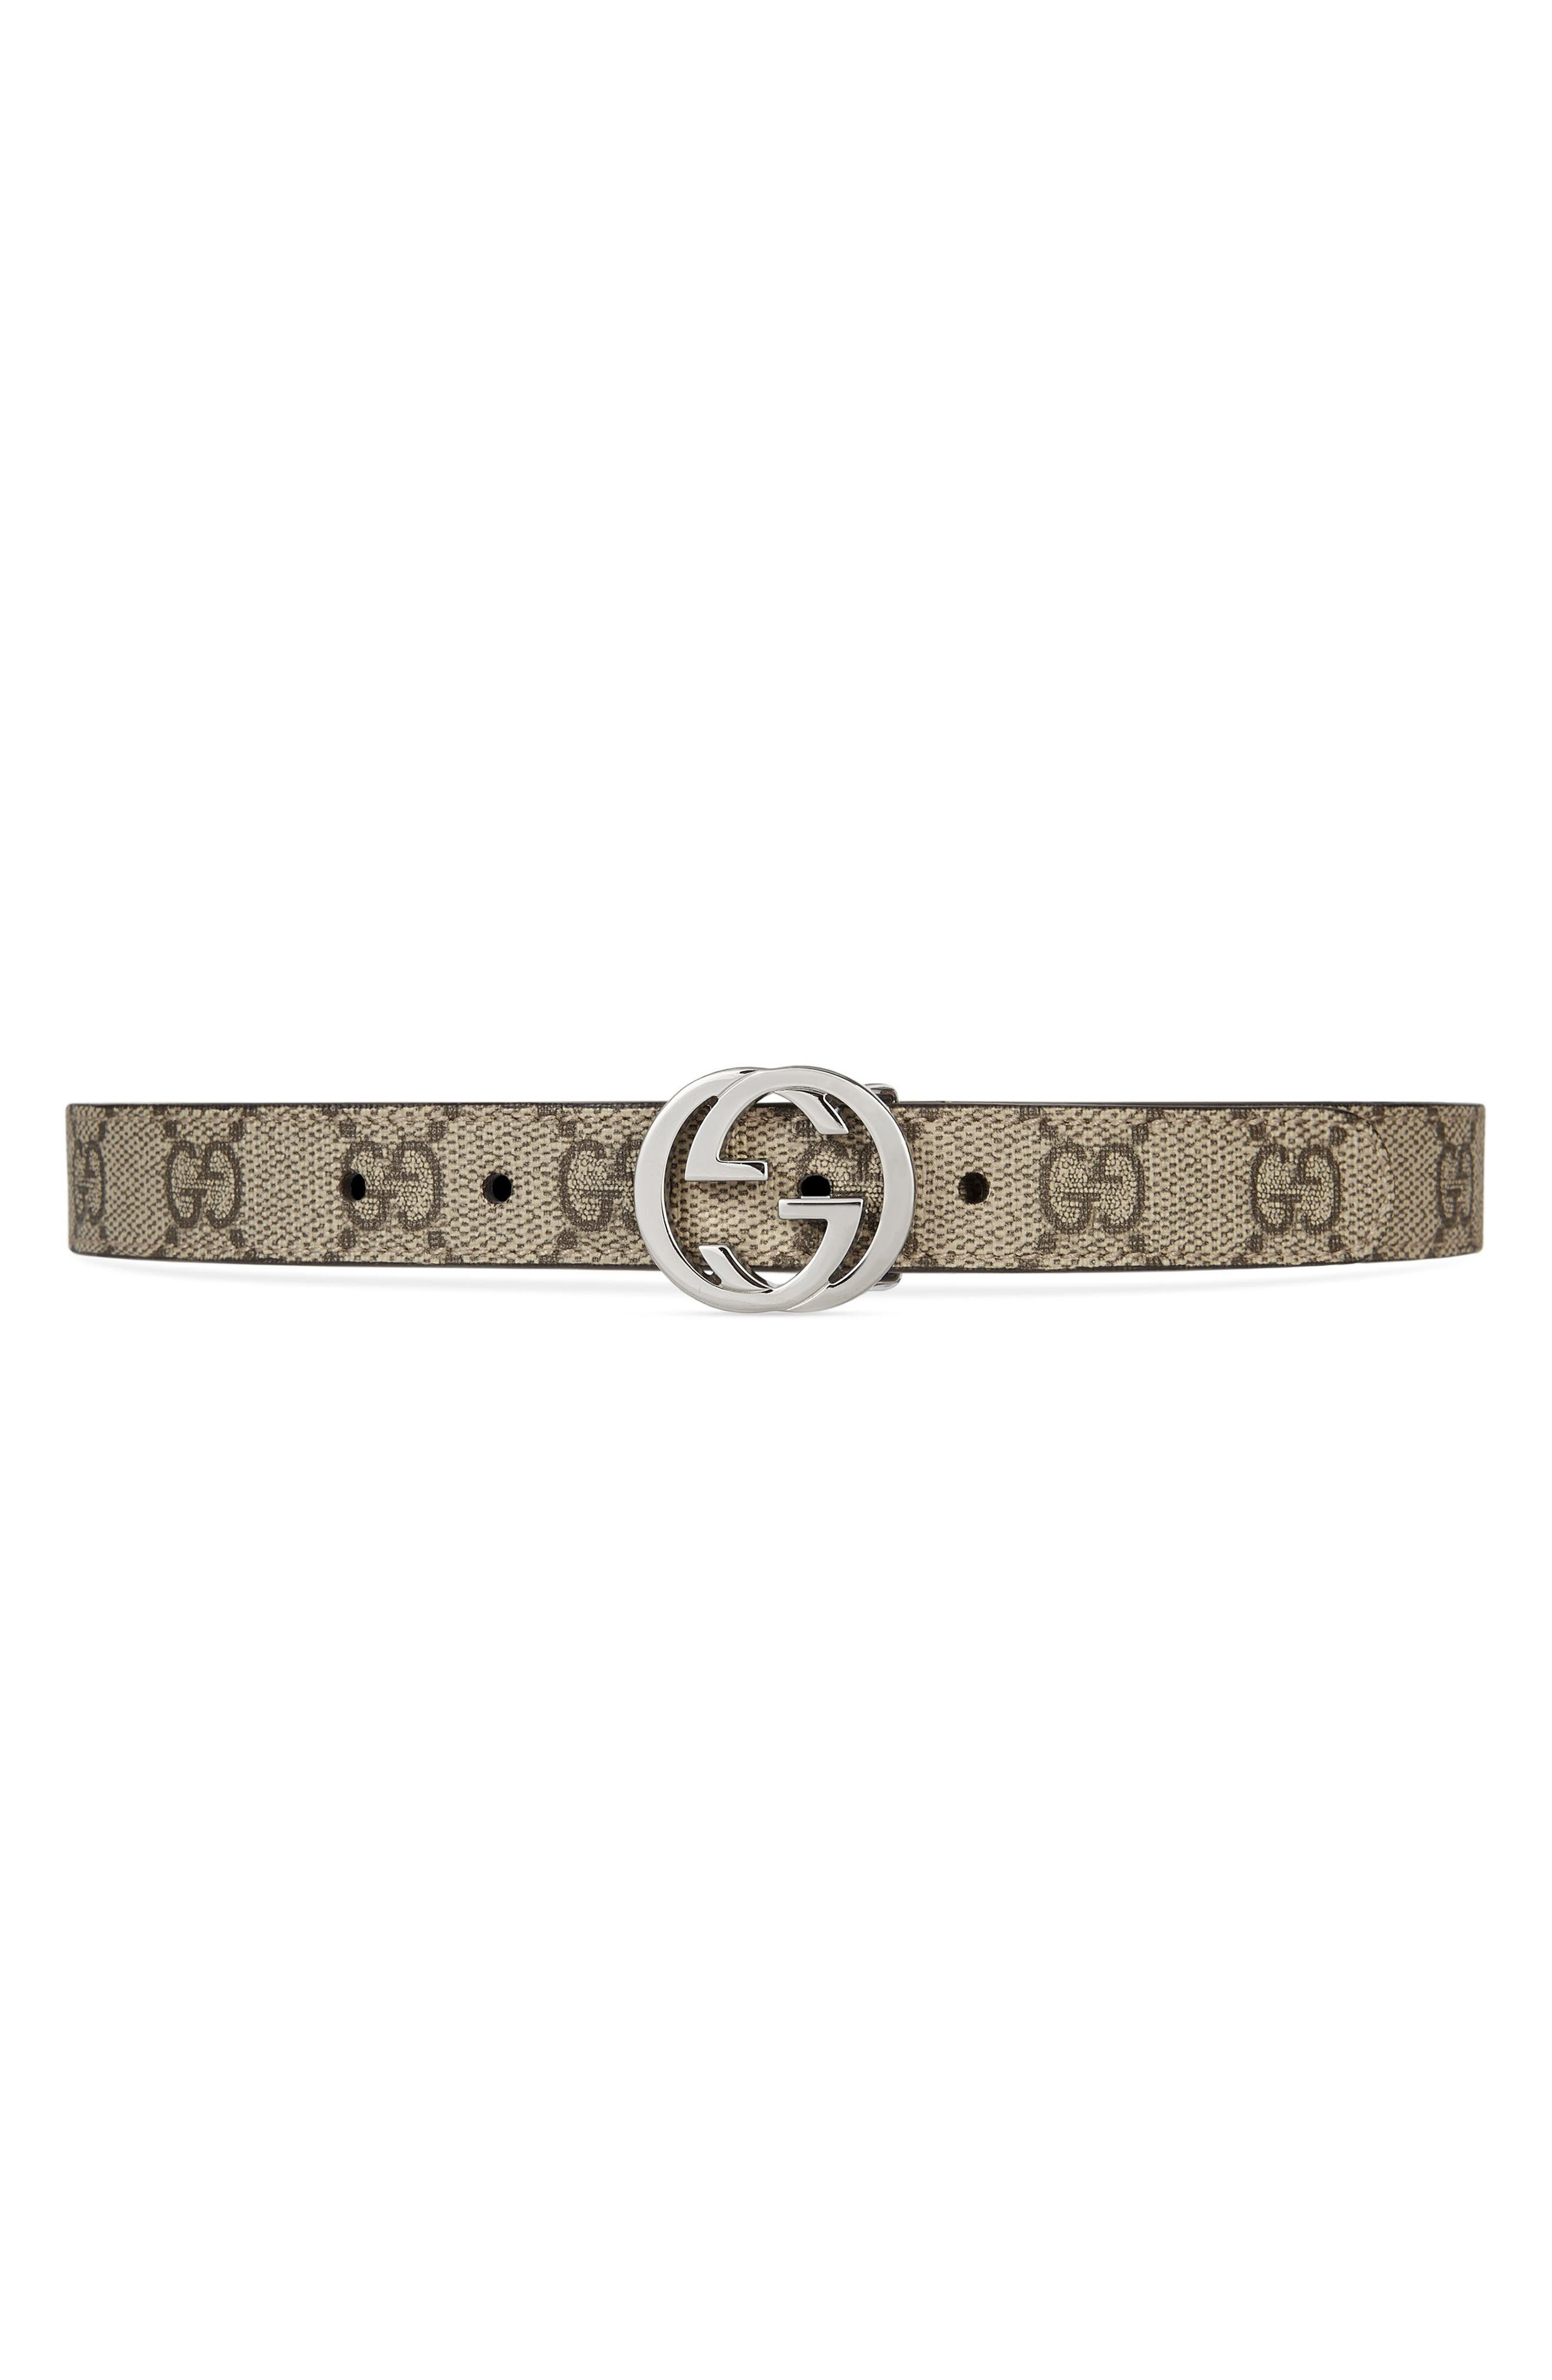 Canvas Belt,                             Main thumbnail 1, color,                             BEIGE/ EBONY